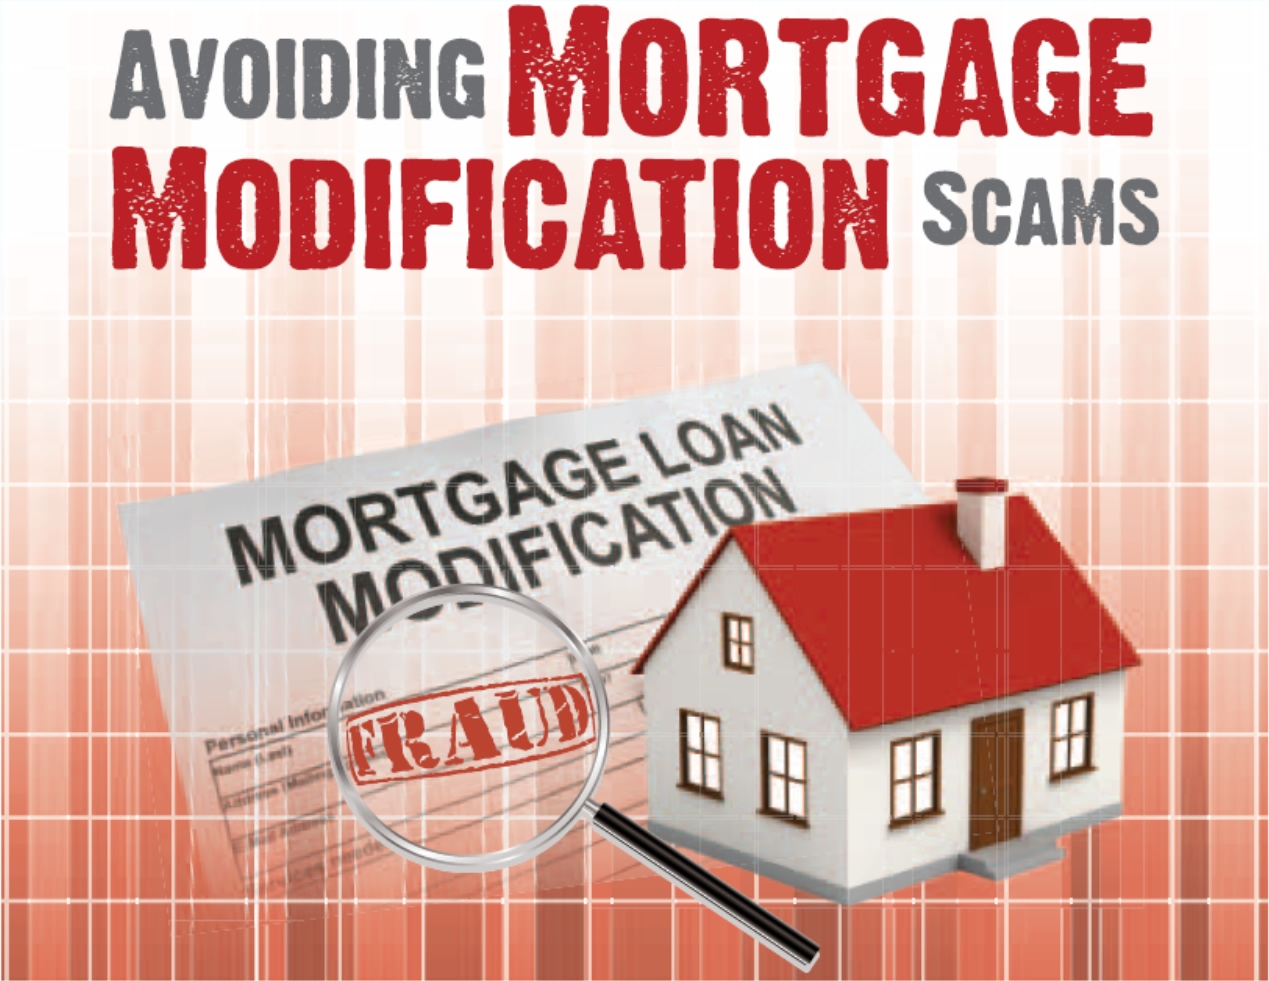 Mortgage-Scams